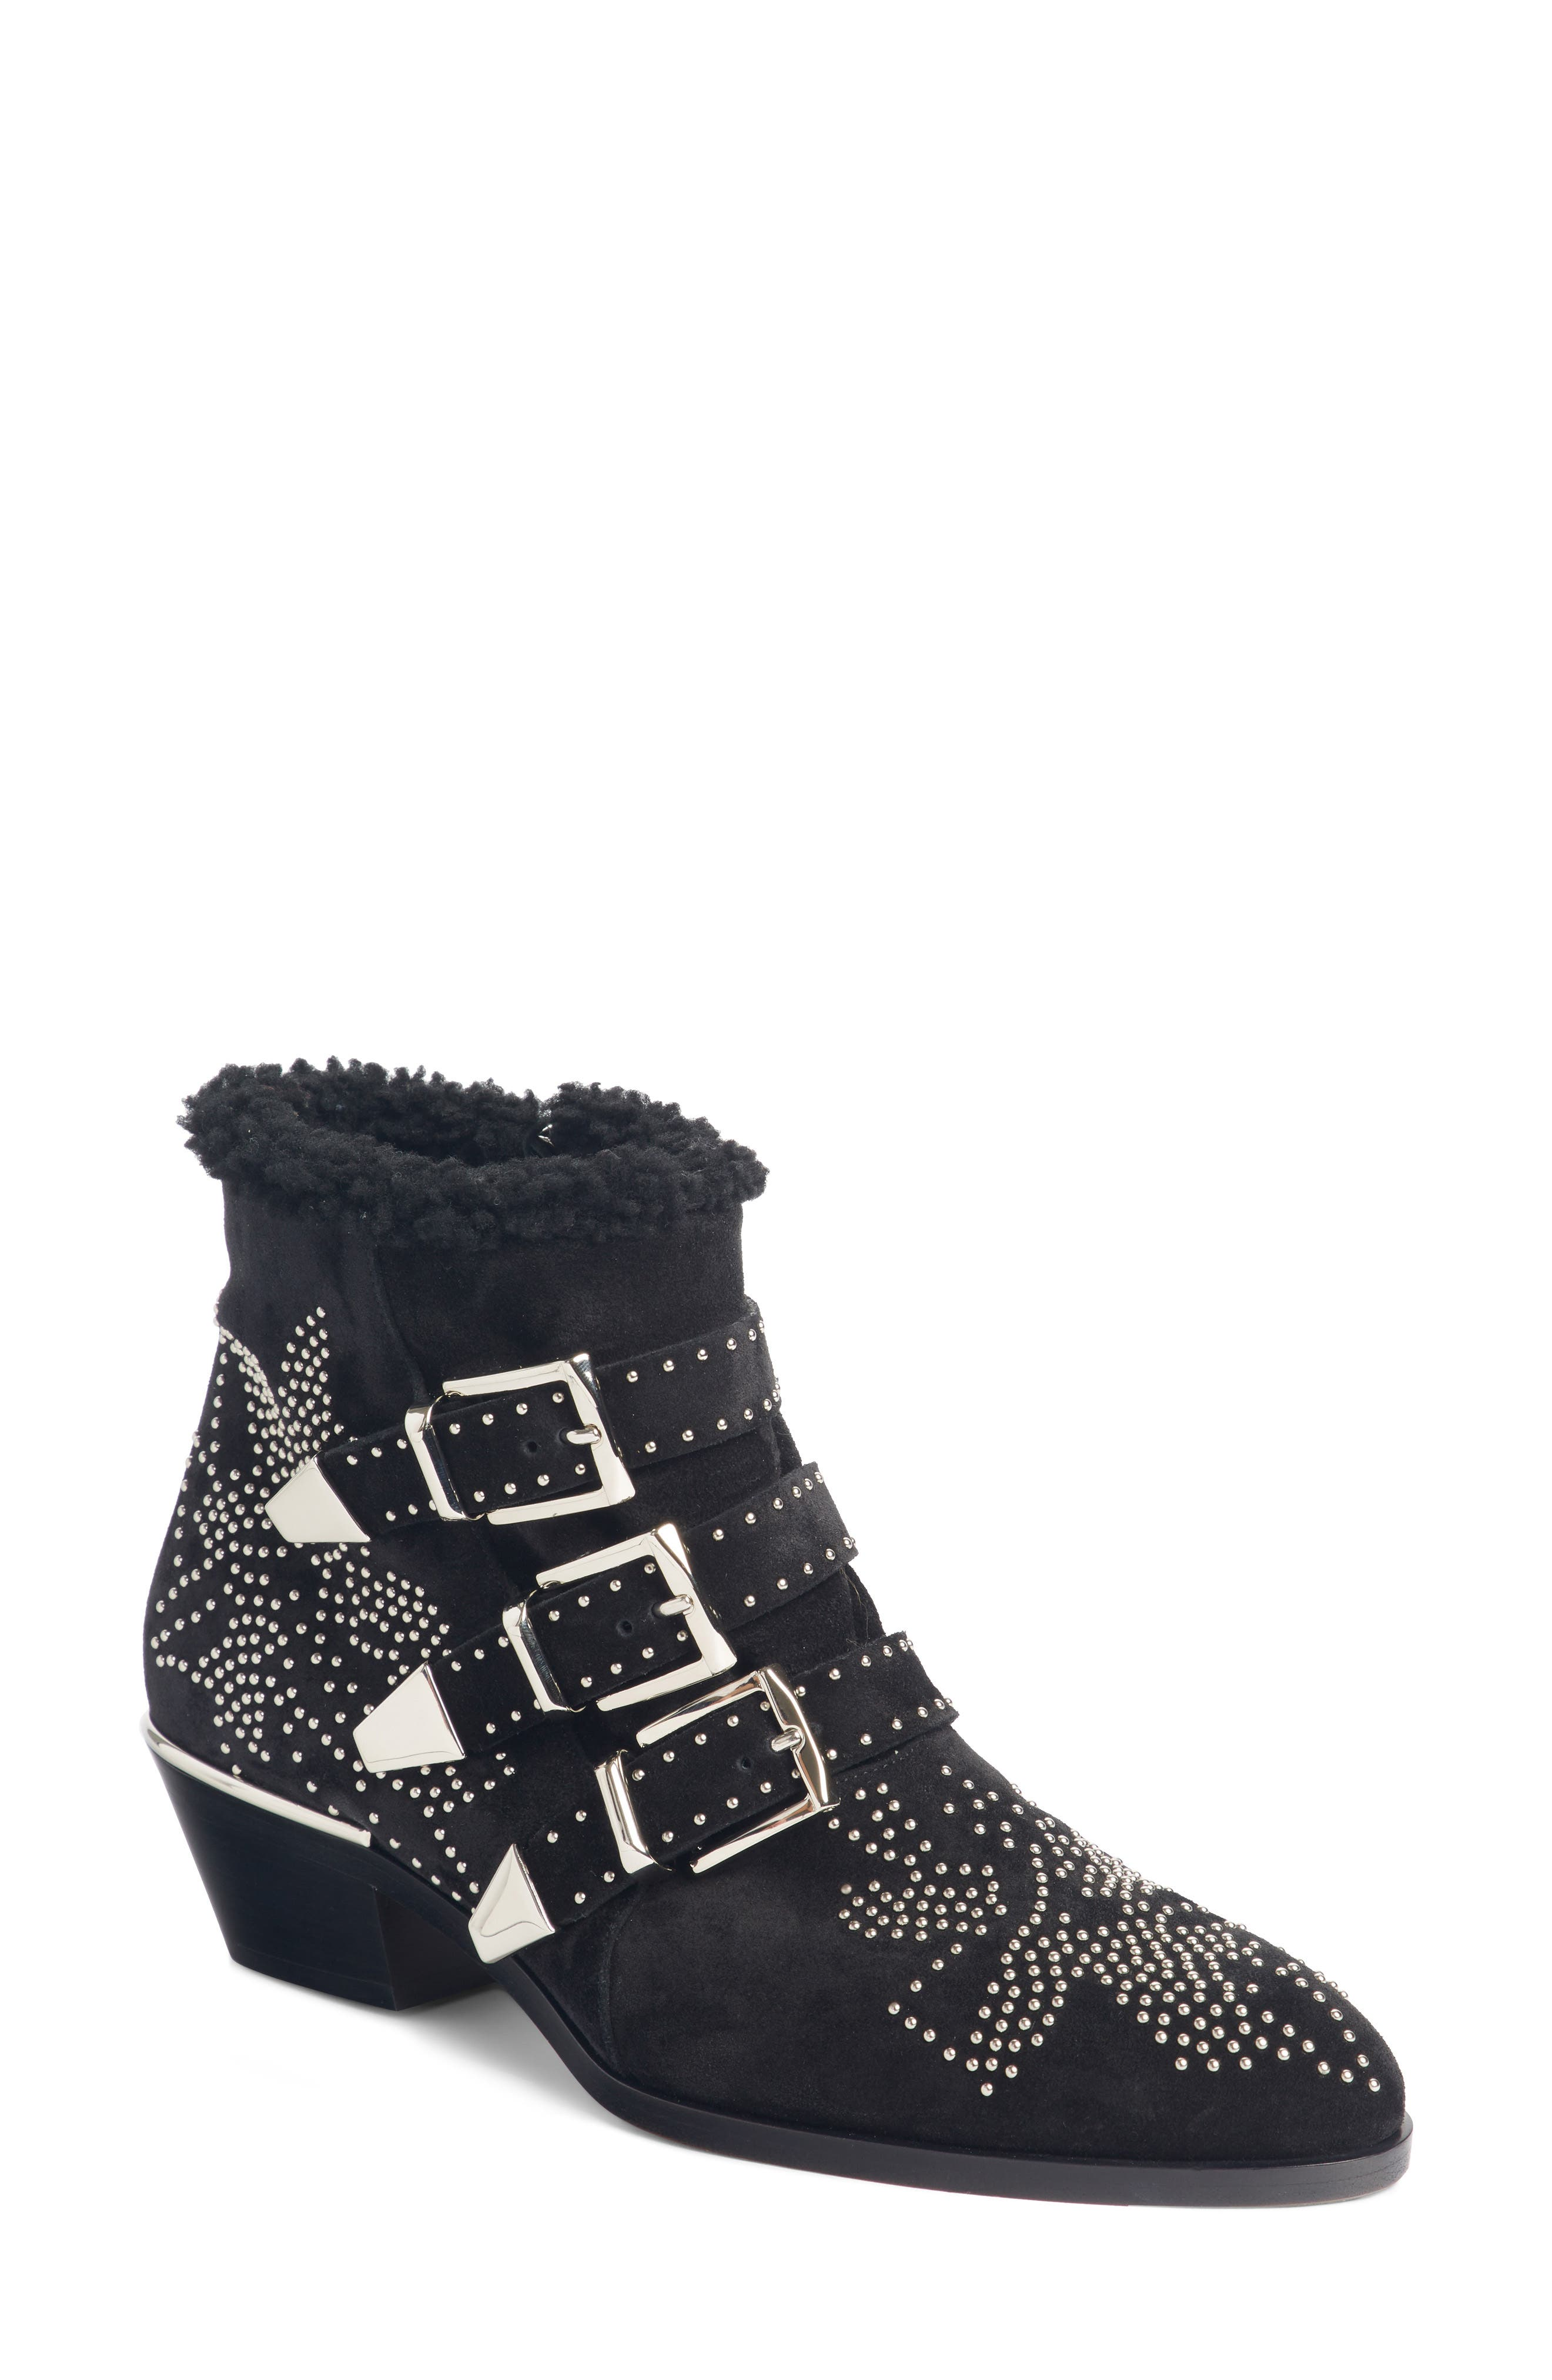 Susanna Genuine Shearling Studded Bootie,                             Main thumbnail 1, color,                             BLACK